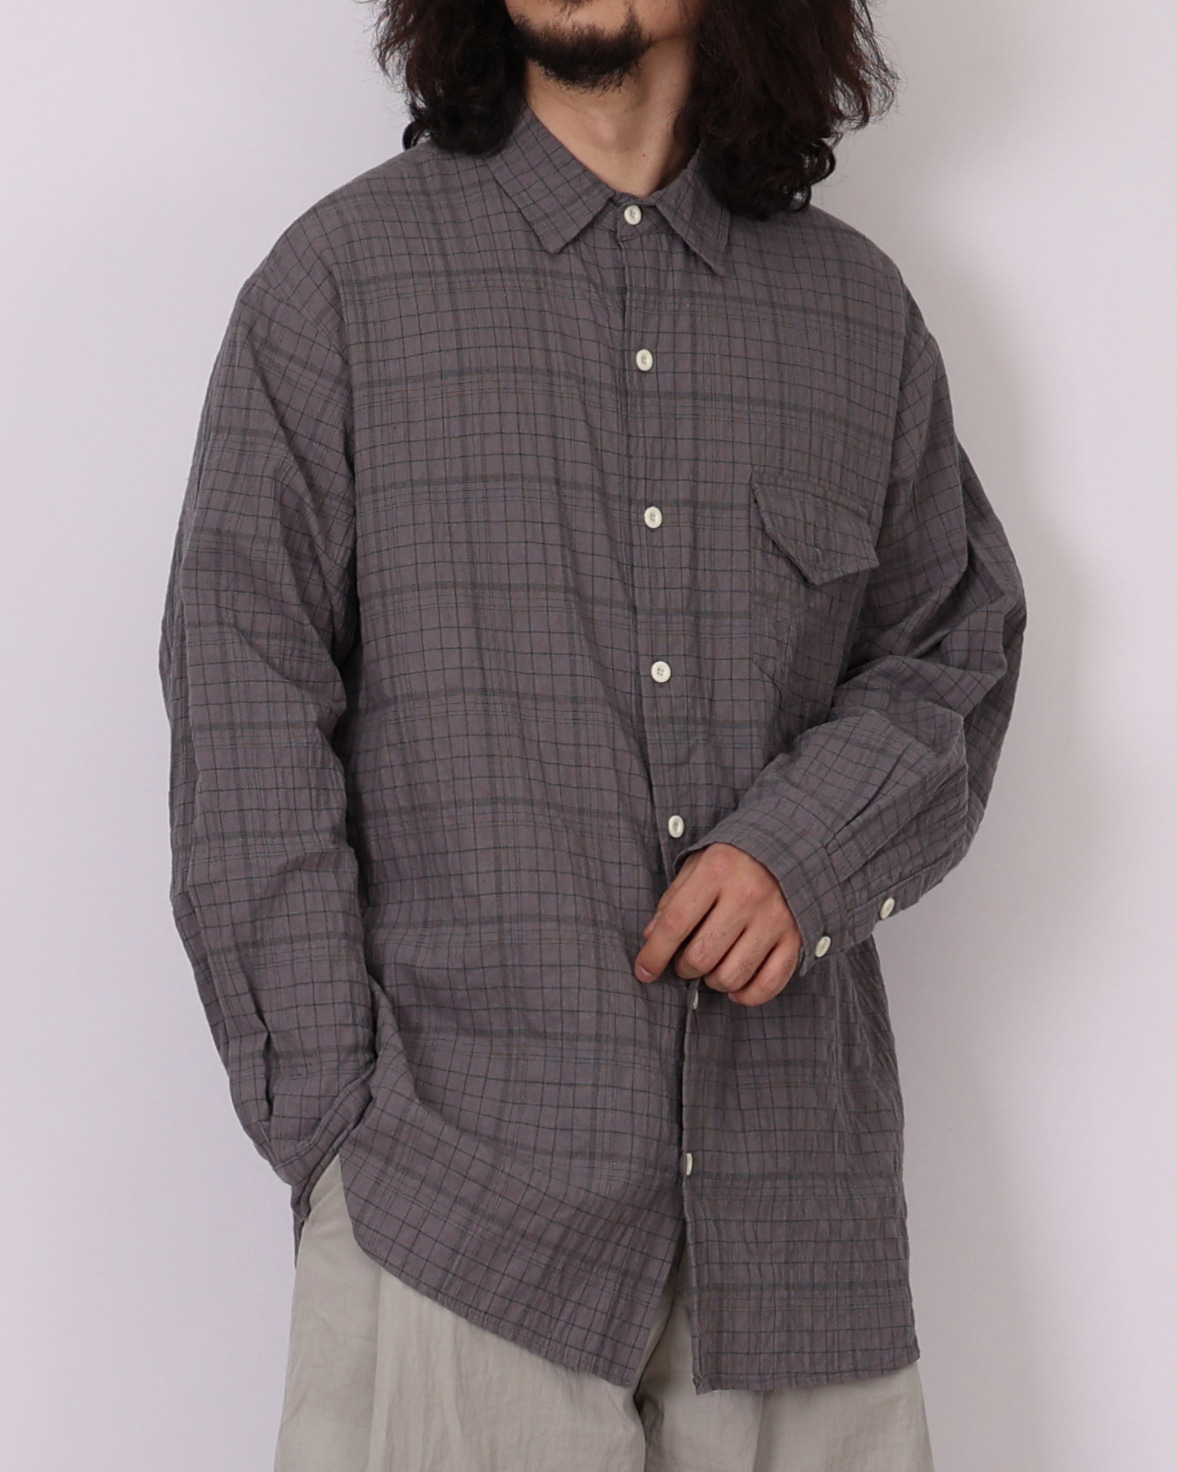 Wrinkle Wide Check Shirts (Black/Gray)